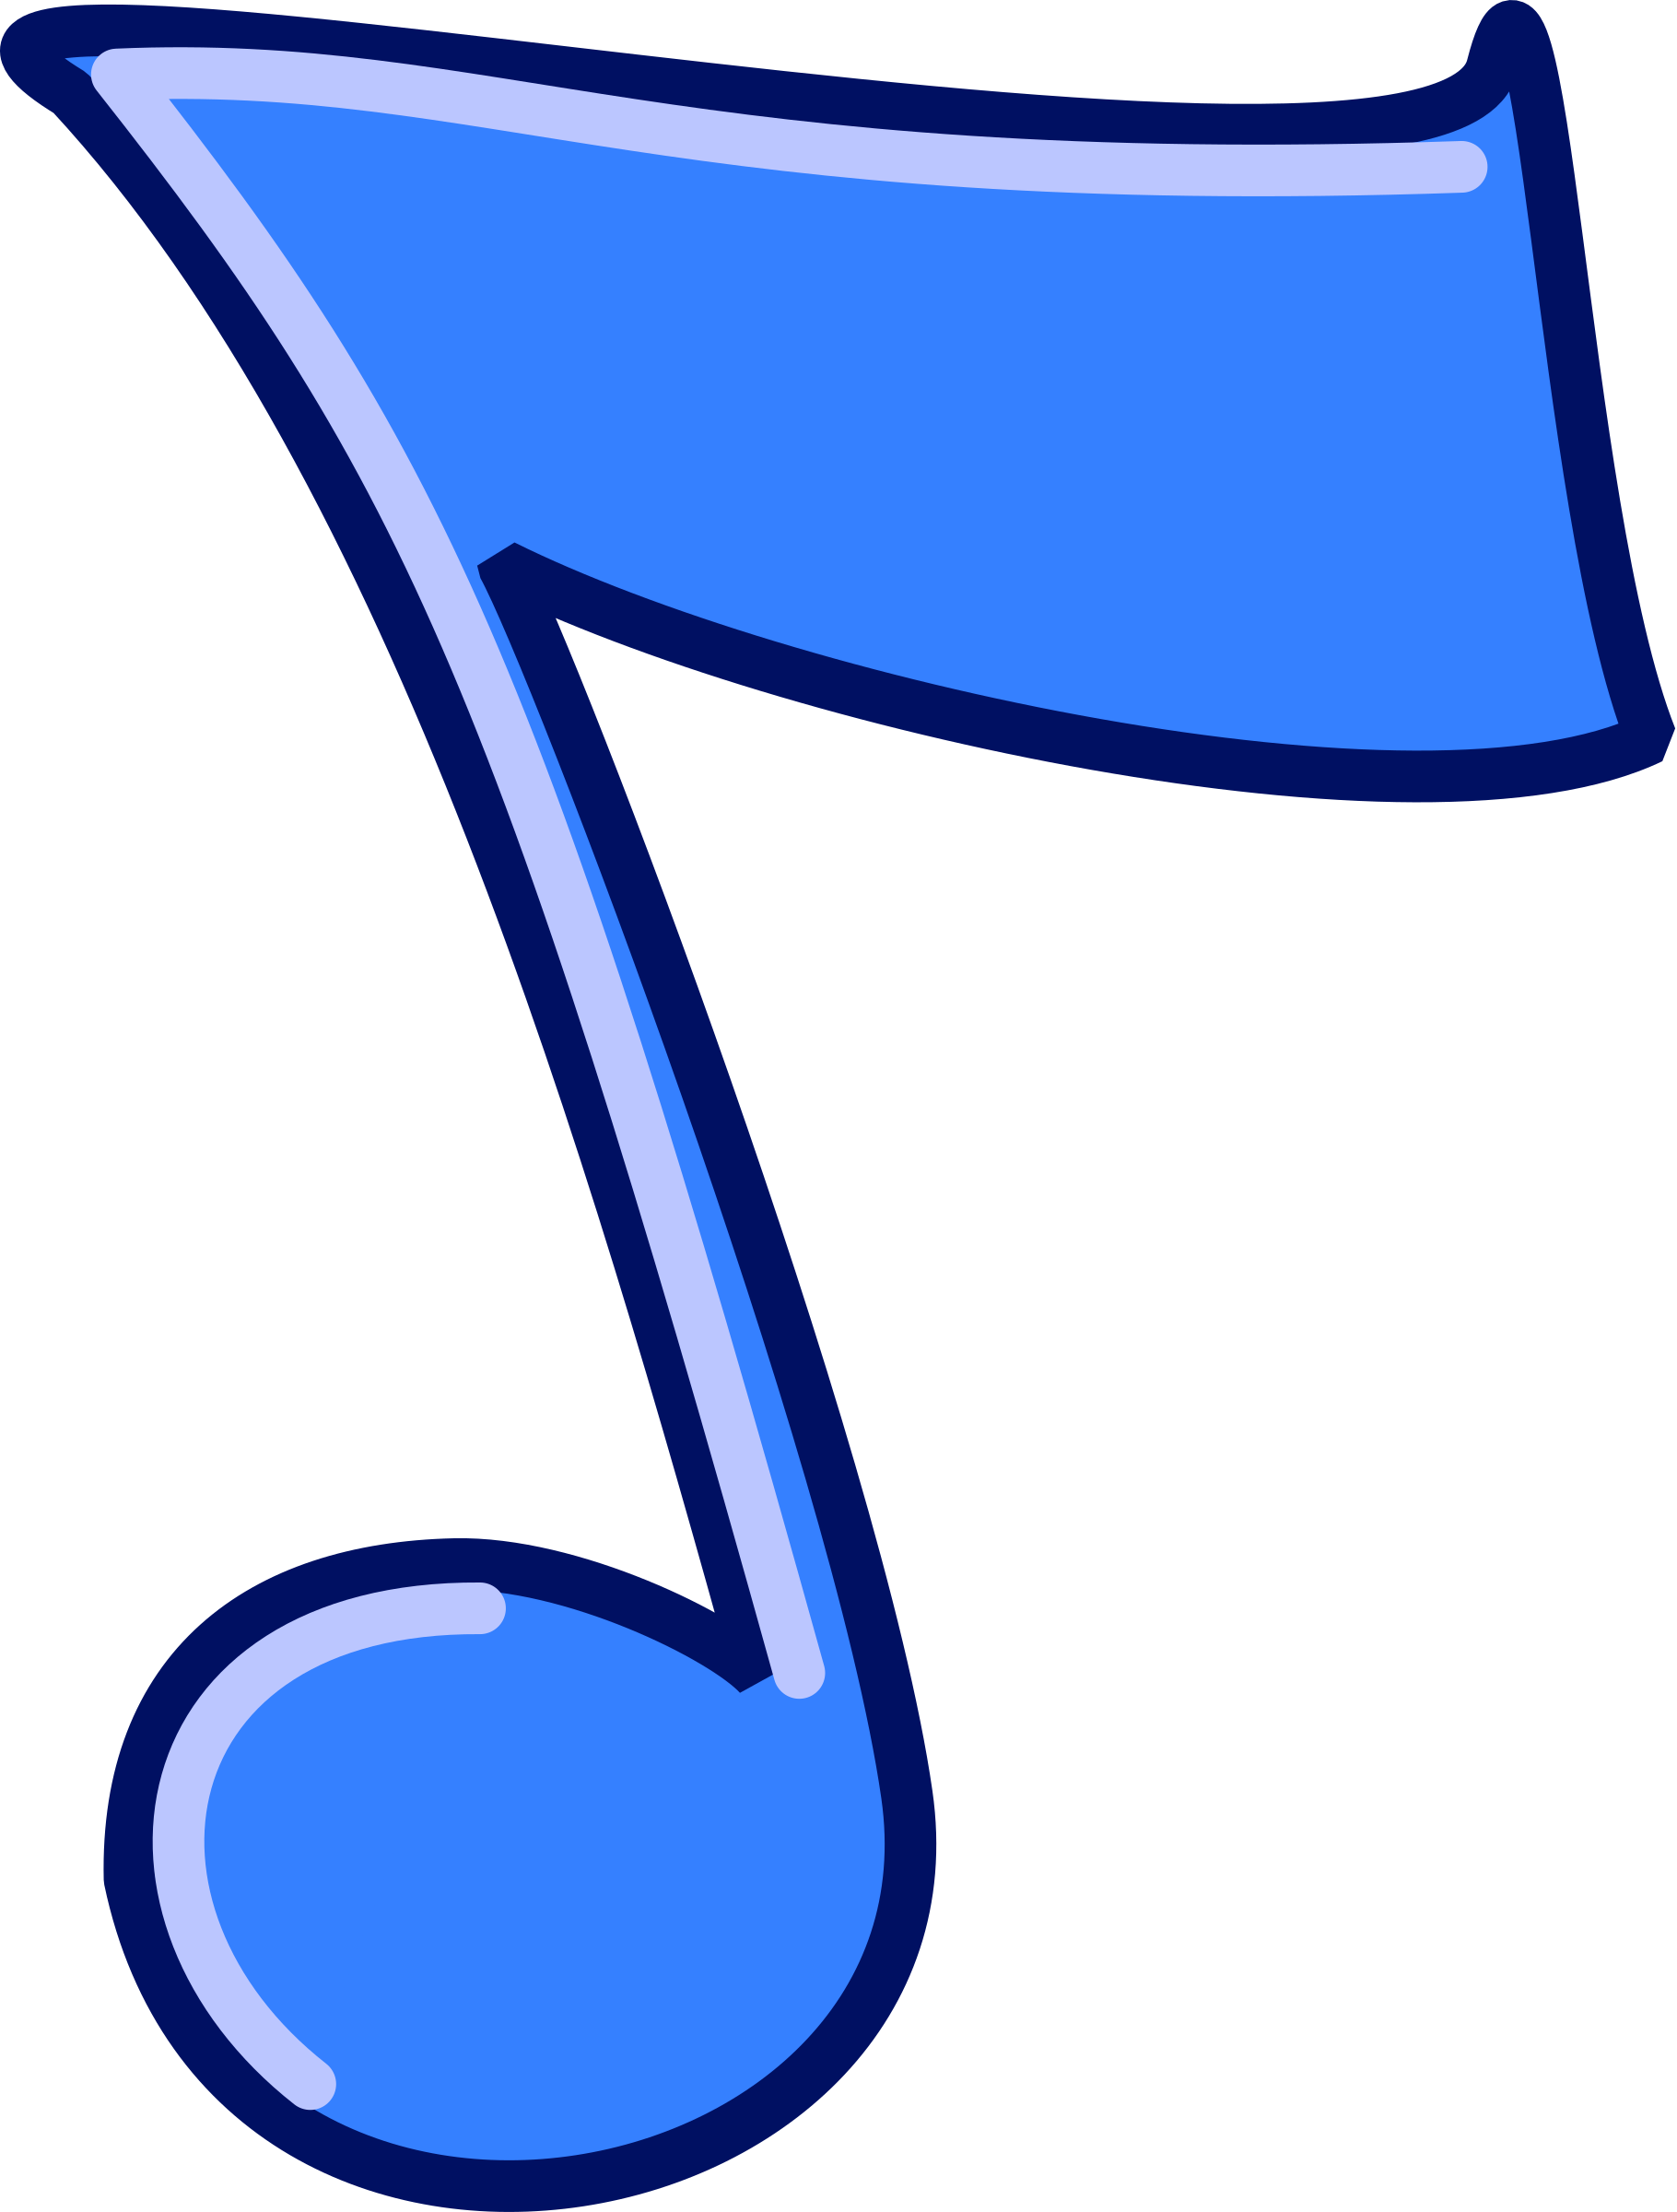 Musical note big image. Coloring clipart music